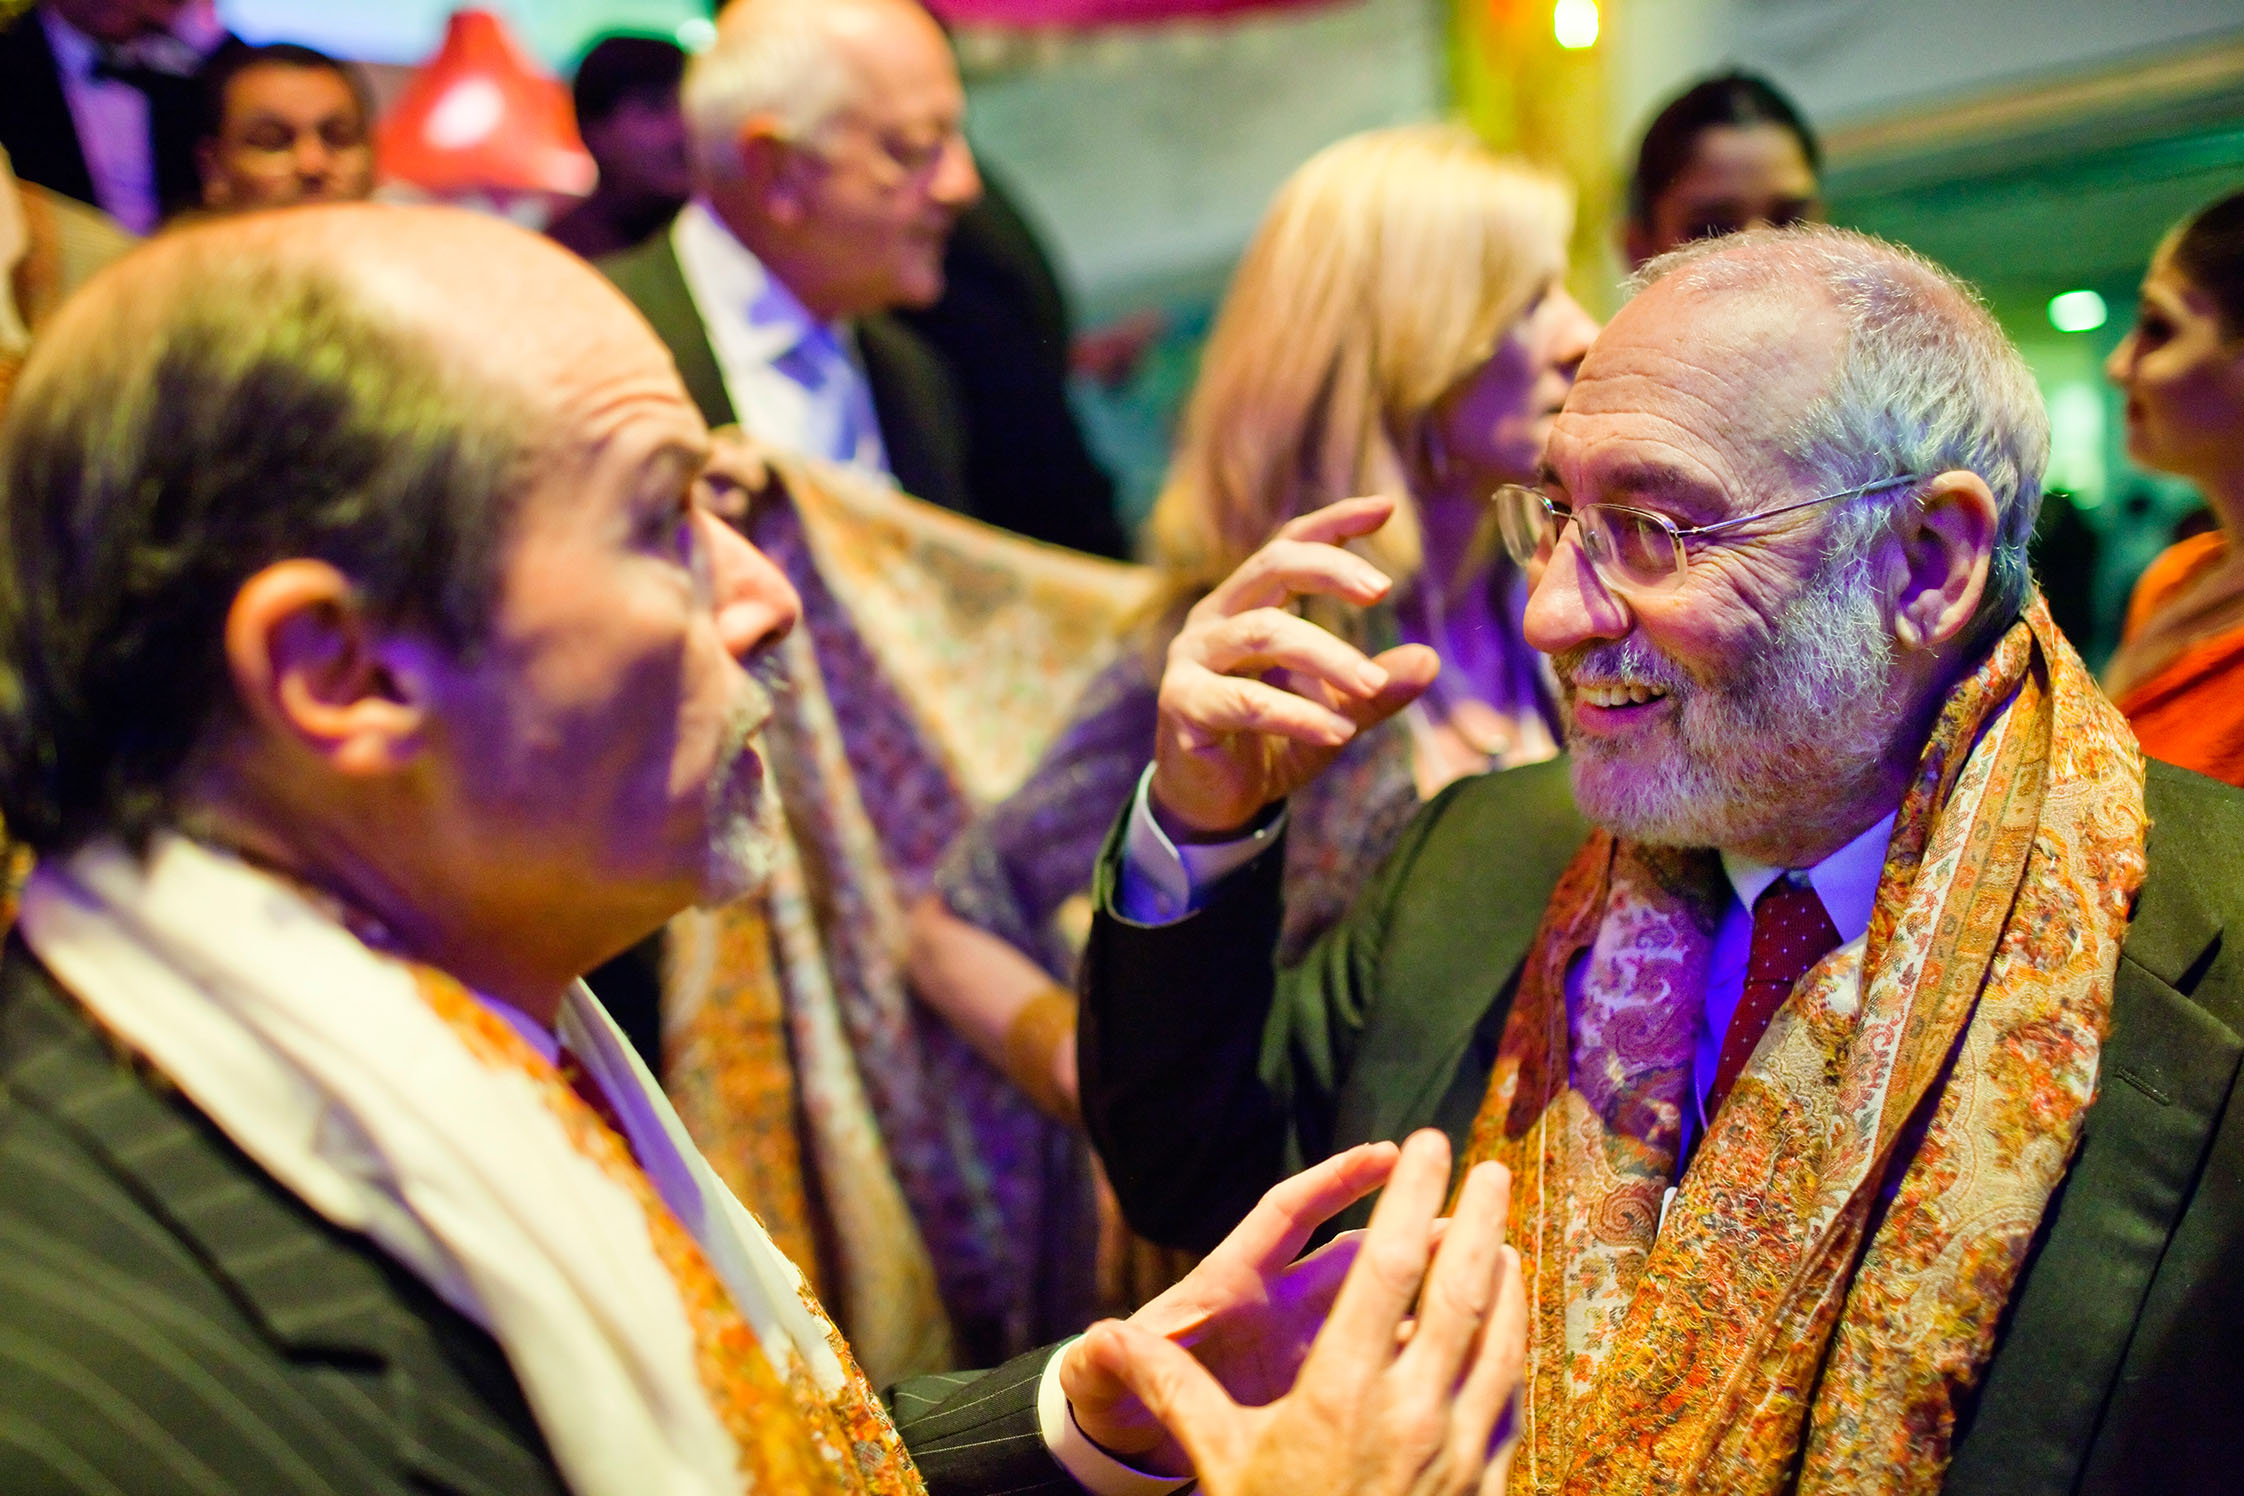 India Cultural Soirée. Robert Lawrence speaking with Joseph Stiglitz.